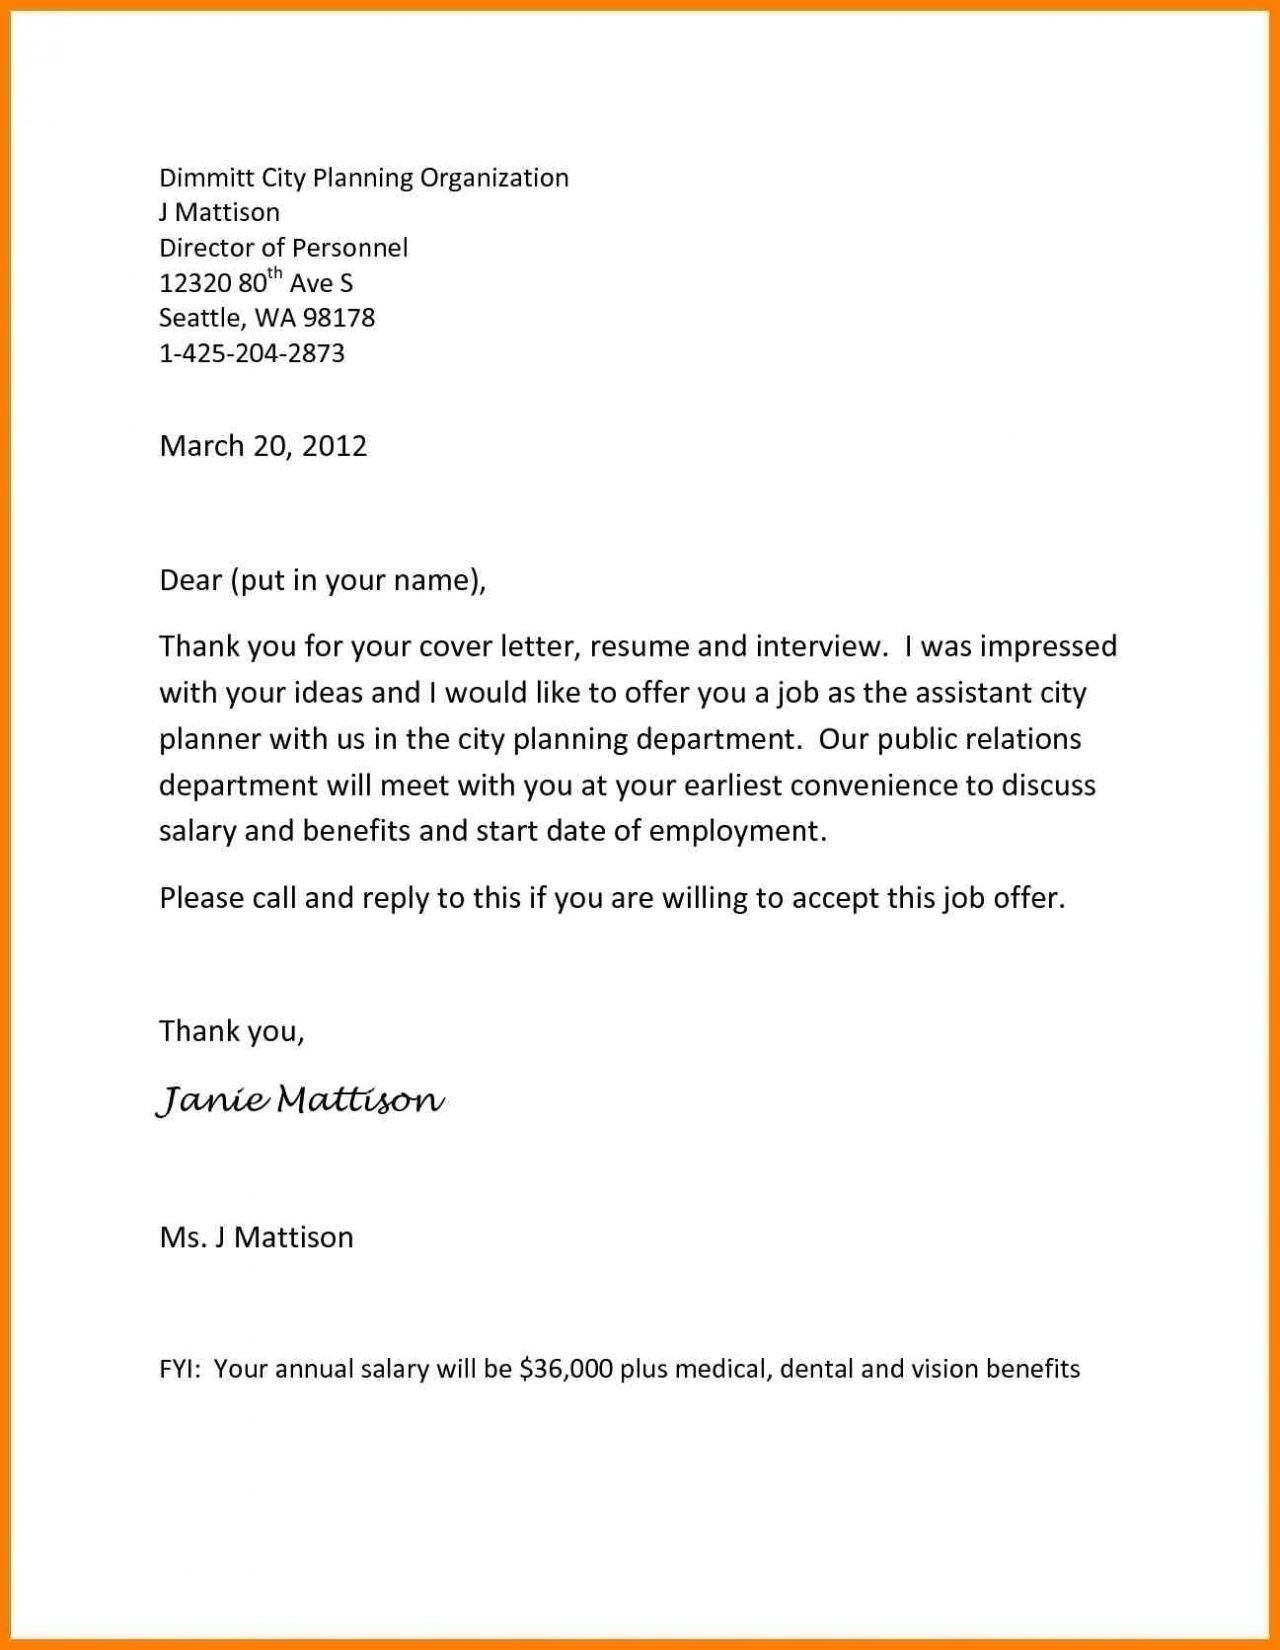 Job Offer Letter Example in 2020 Cover letter template